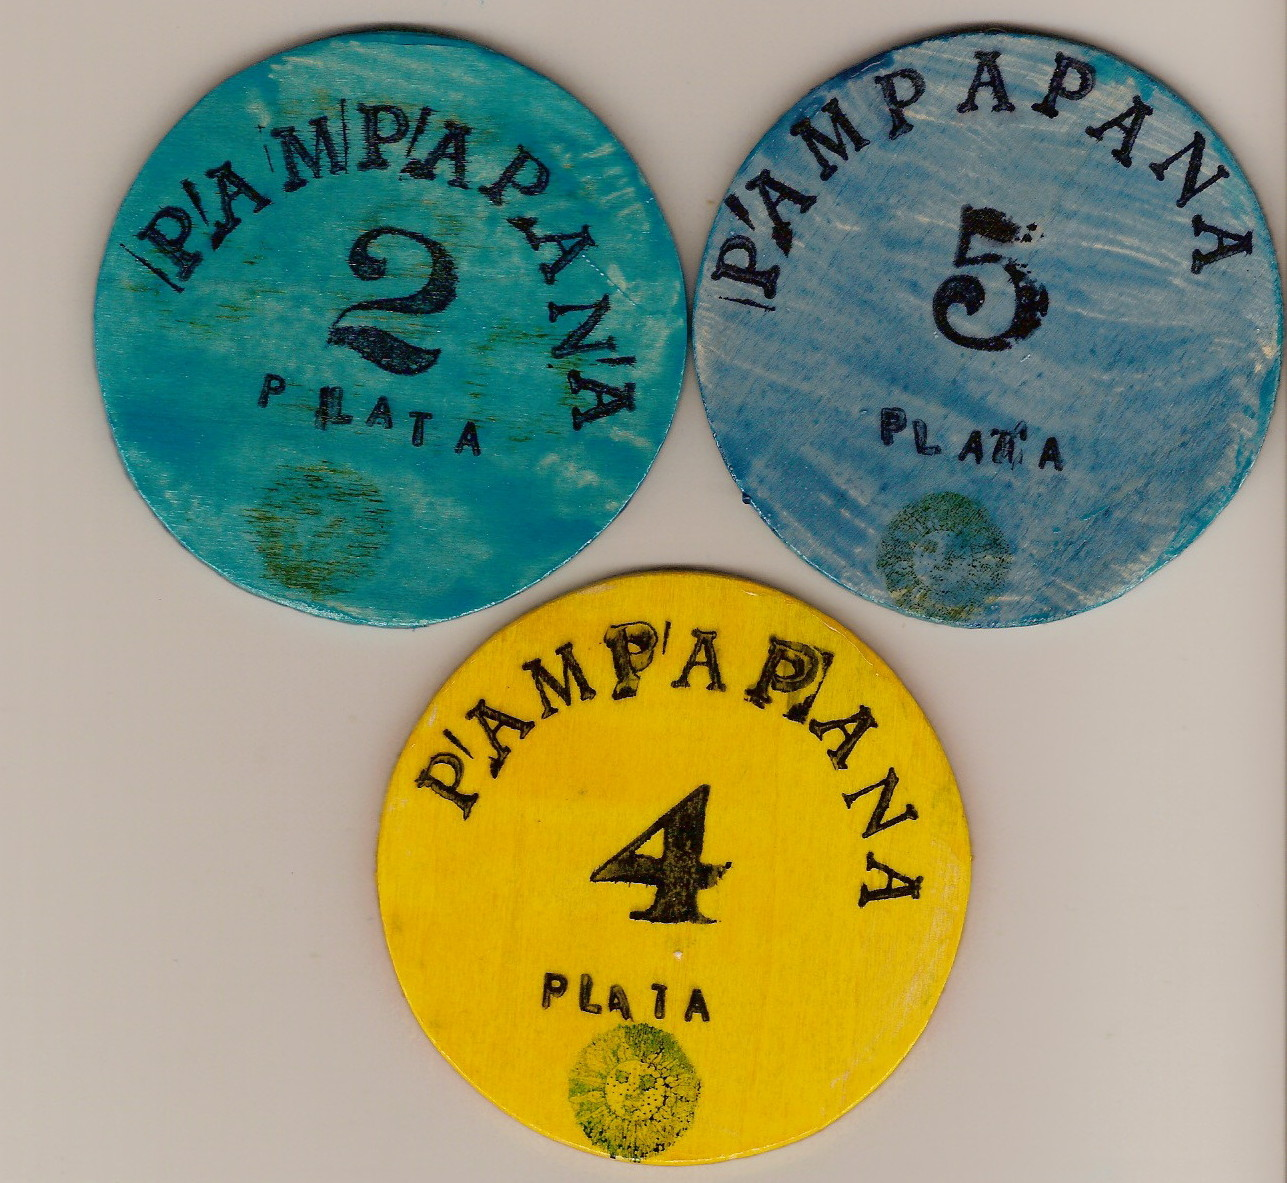 Pampapana Wood 2, 4 and 5 Plata